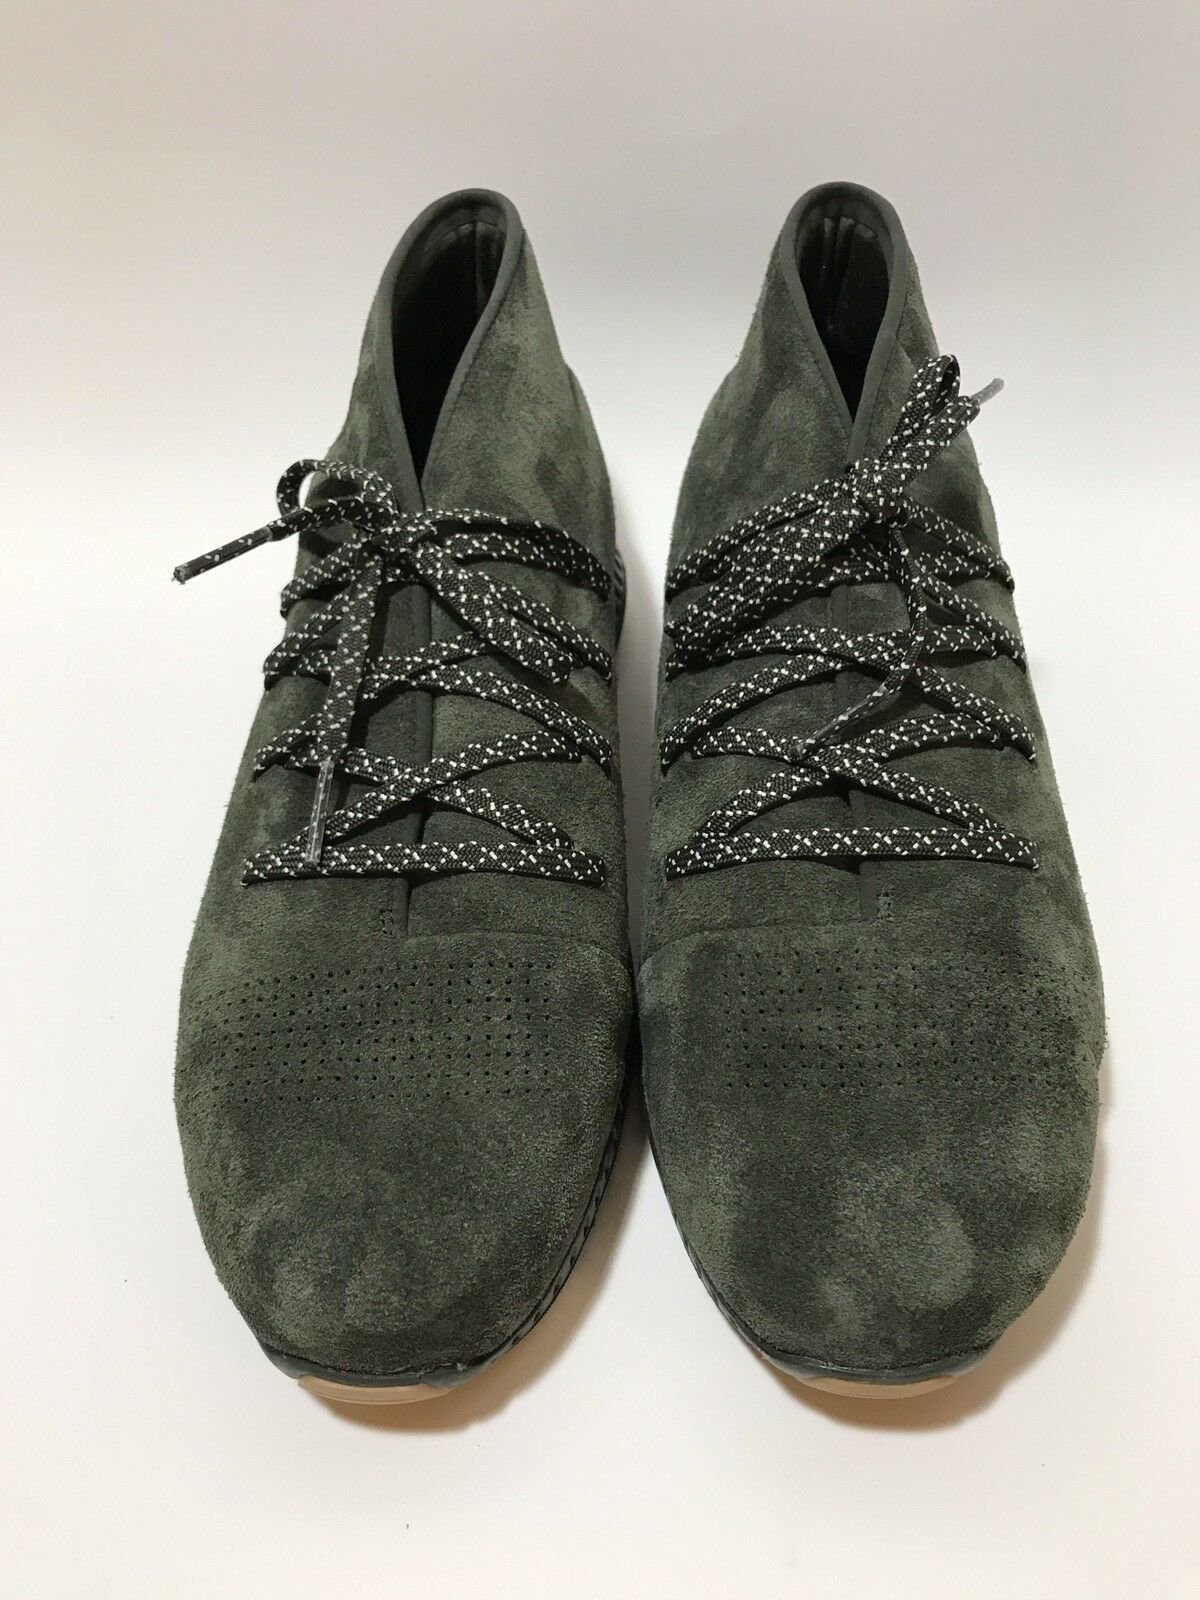 NEW UNDER ARMOUR Uomo UA Veloce Mid Lace Suede Lifestyle Shoes Olive Green 13 M